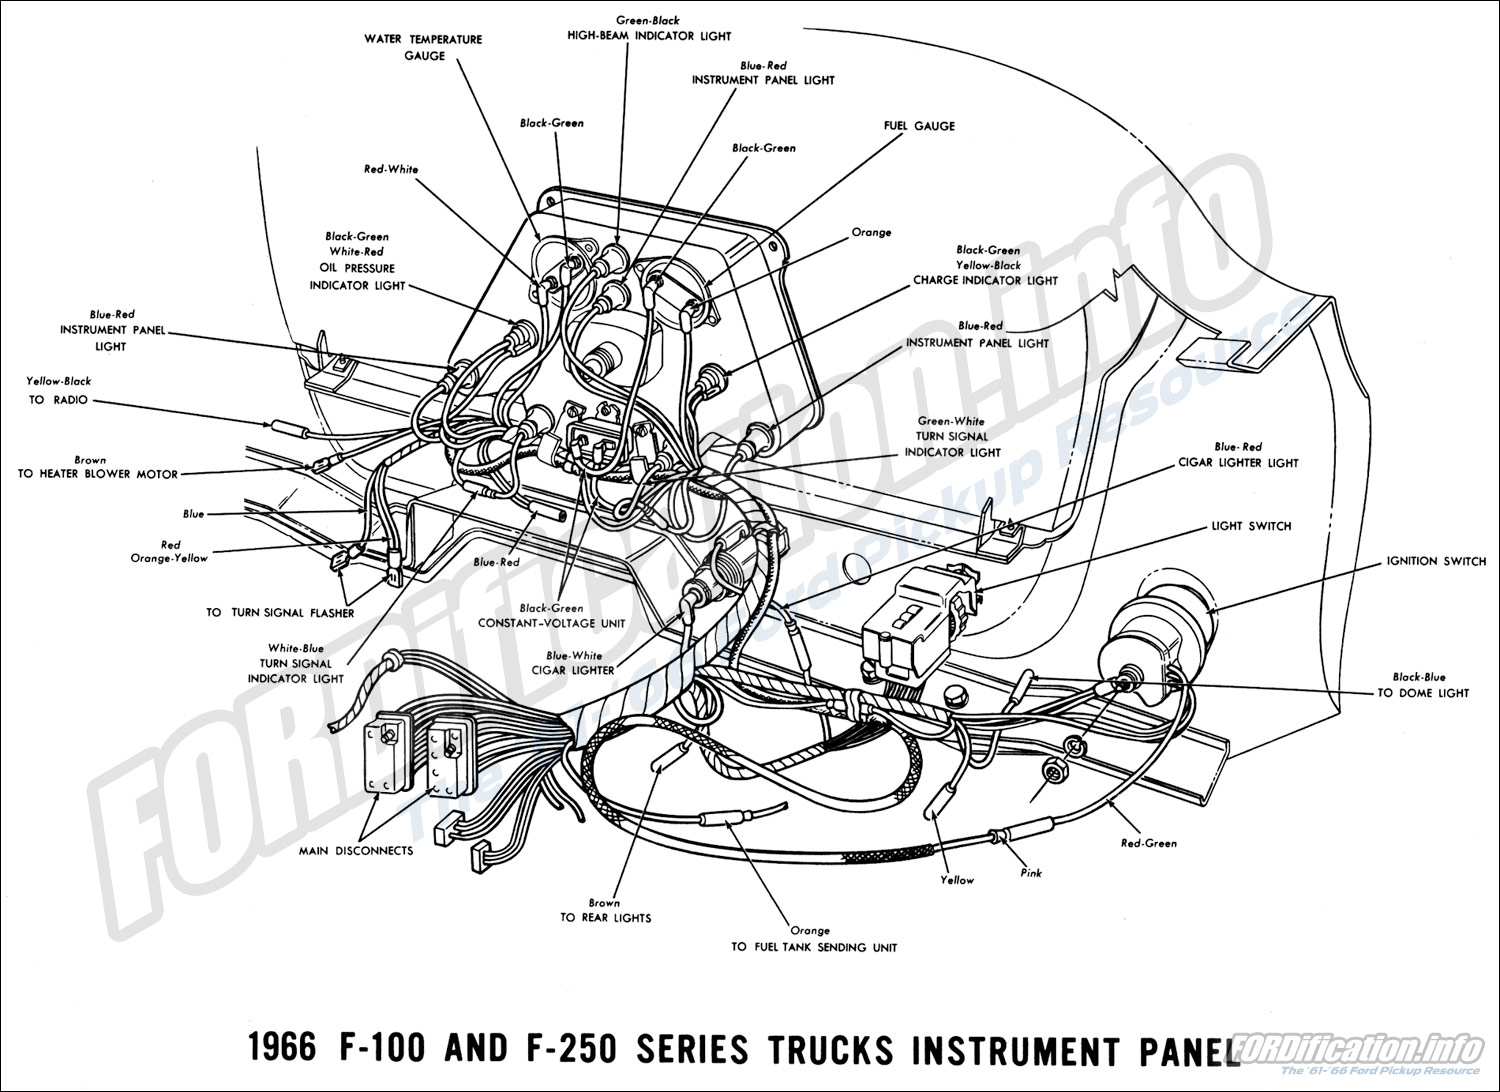 1965 ford f100 electrical wiring diagram